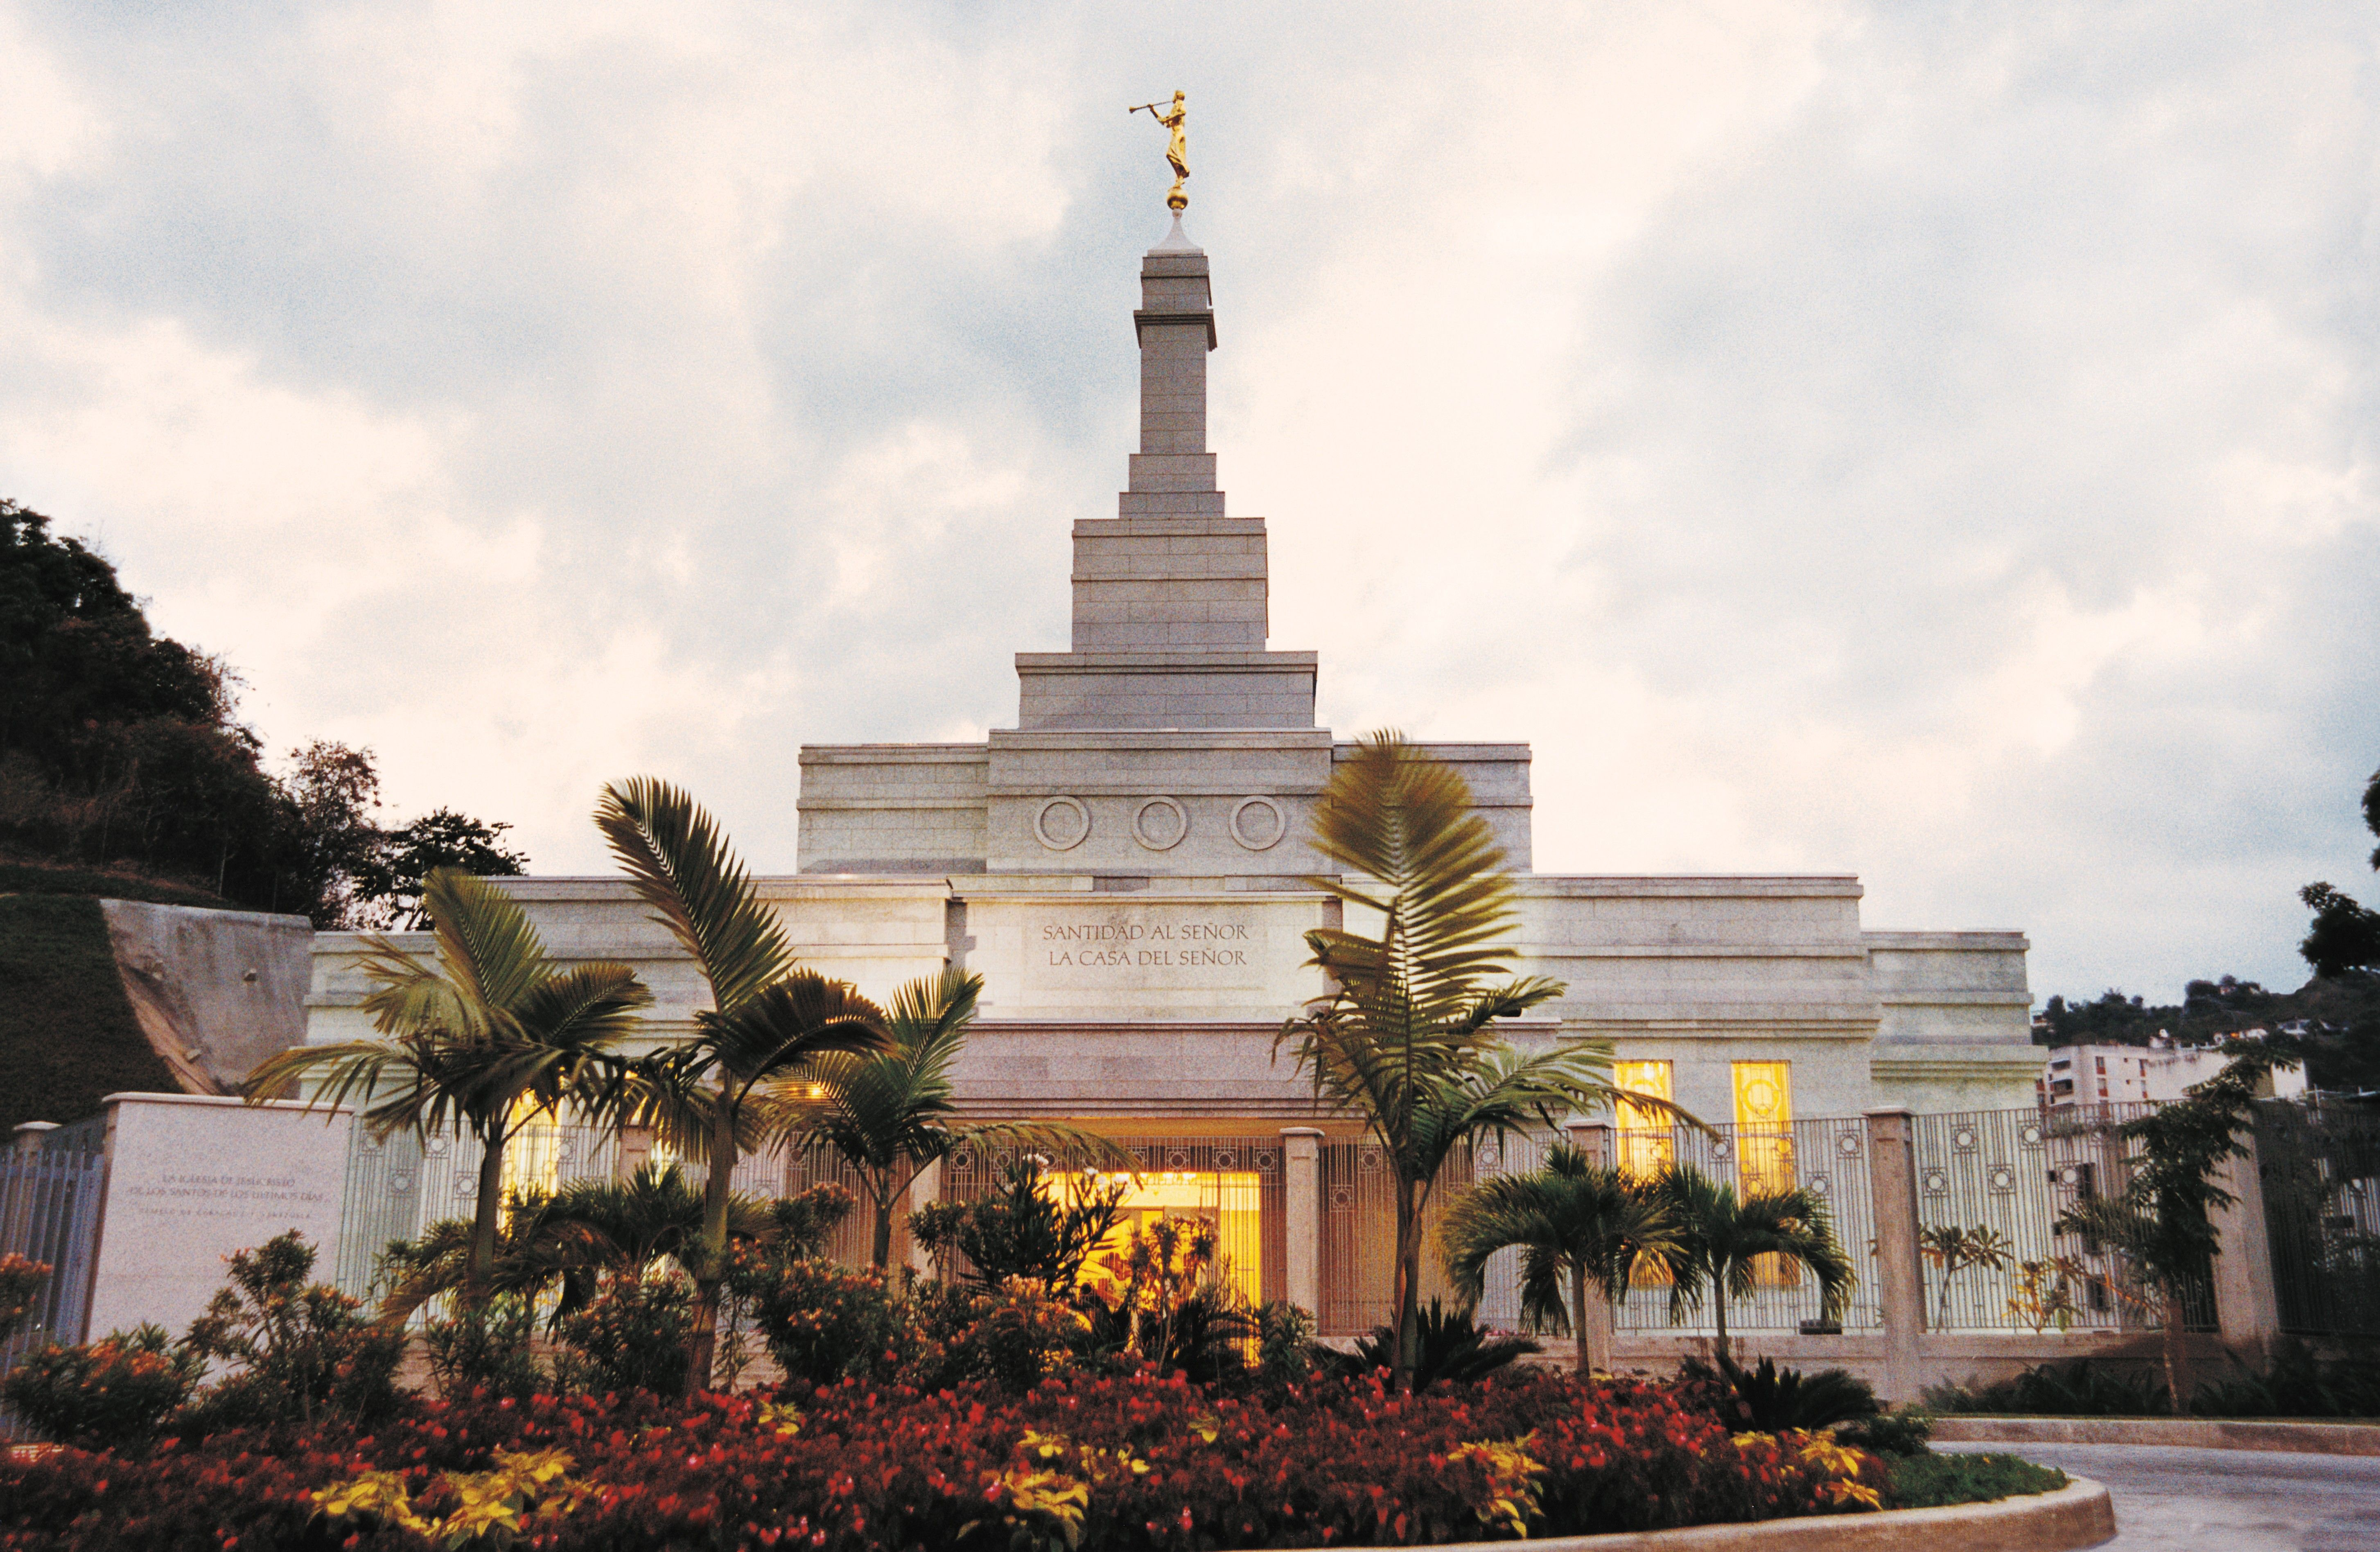 A front view of the Caracas Venezuela Temple on a cloudy day.